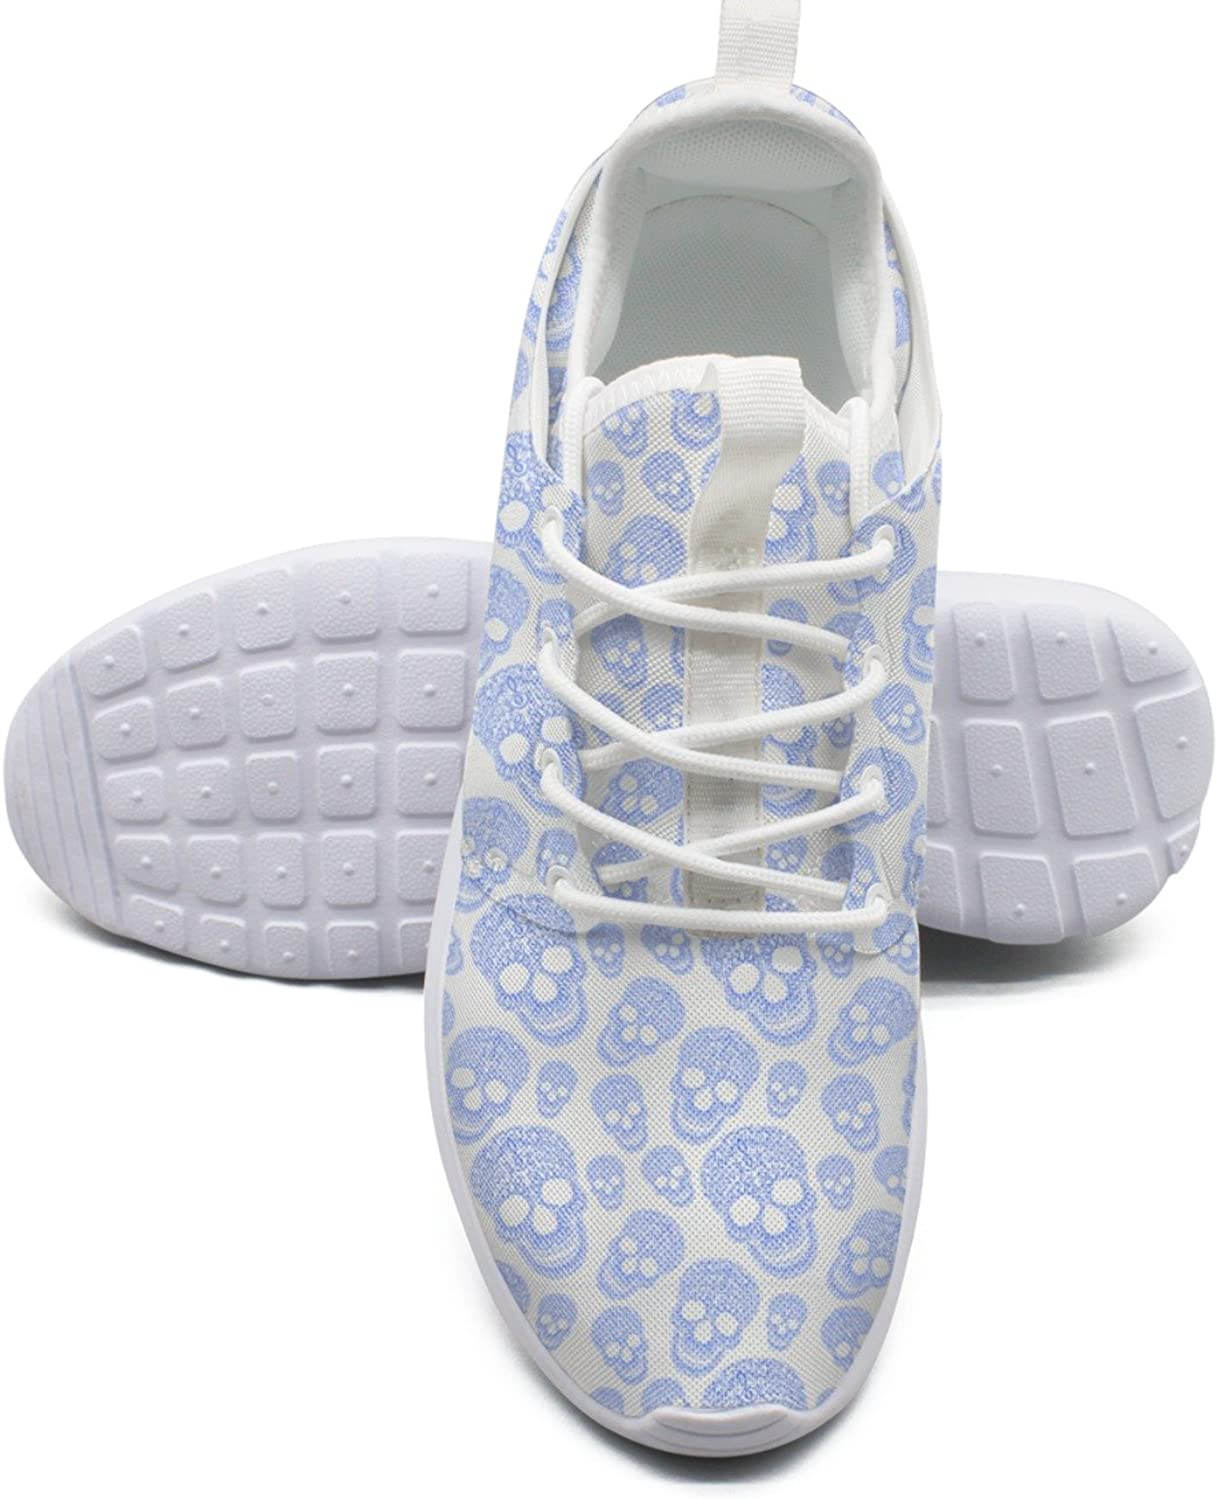 Floral Skulls Women's Fashion Basketball shoes Cute Mesh Lightweight Sneakers